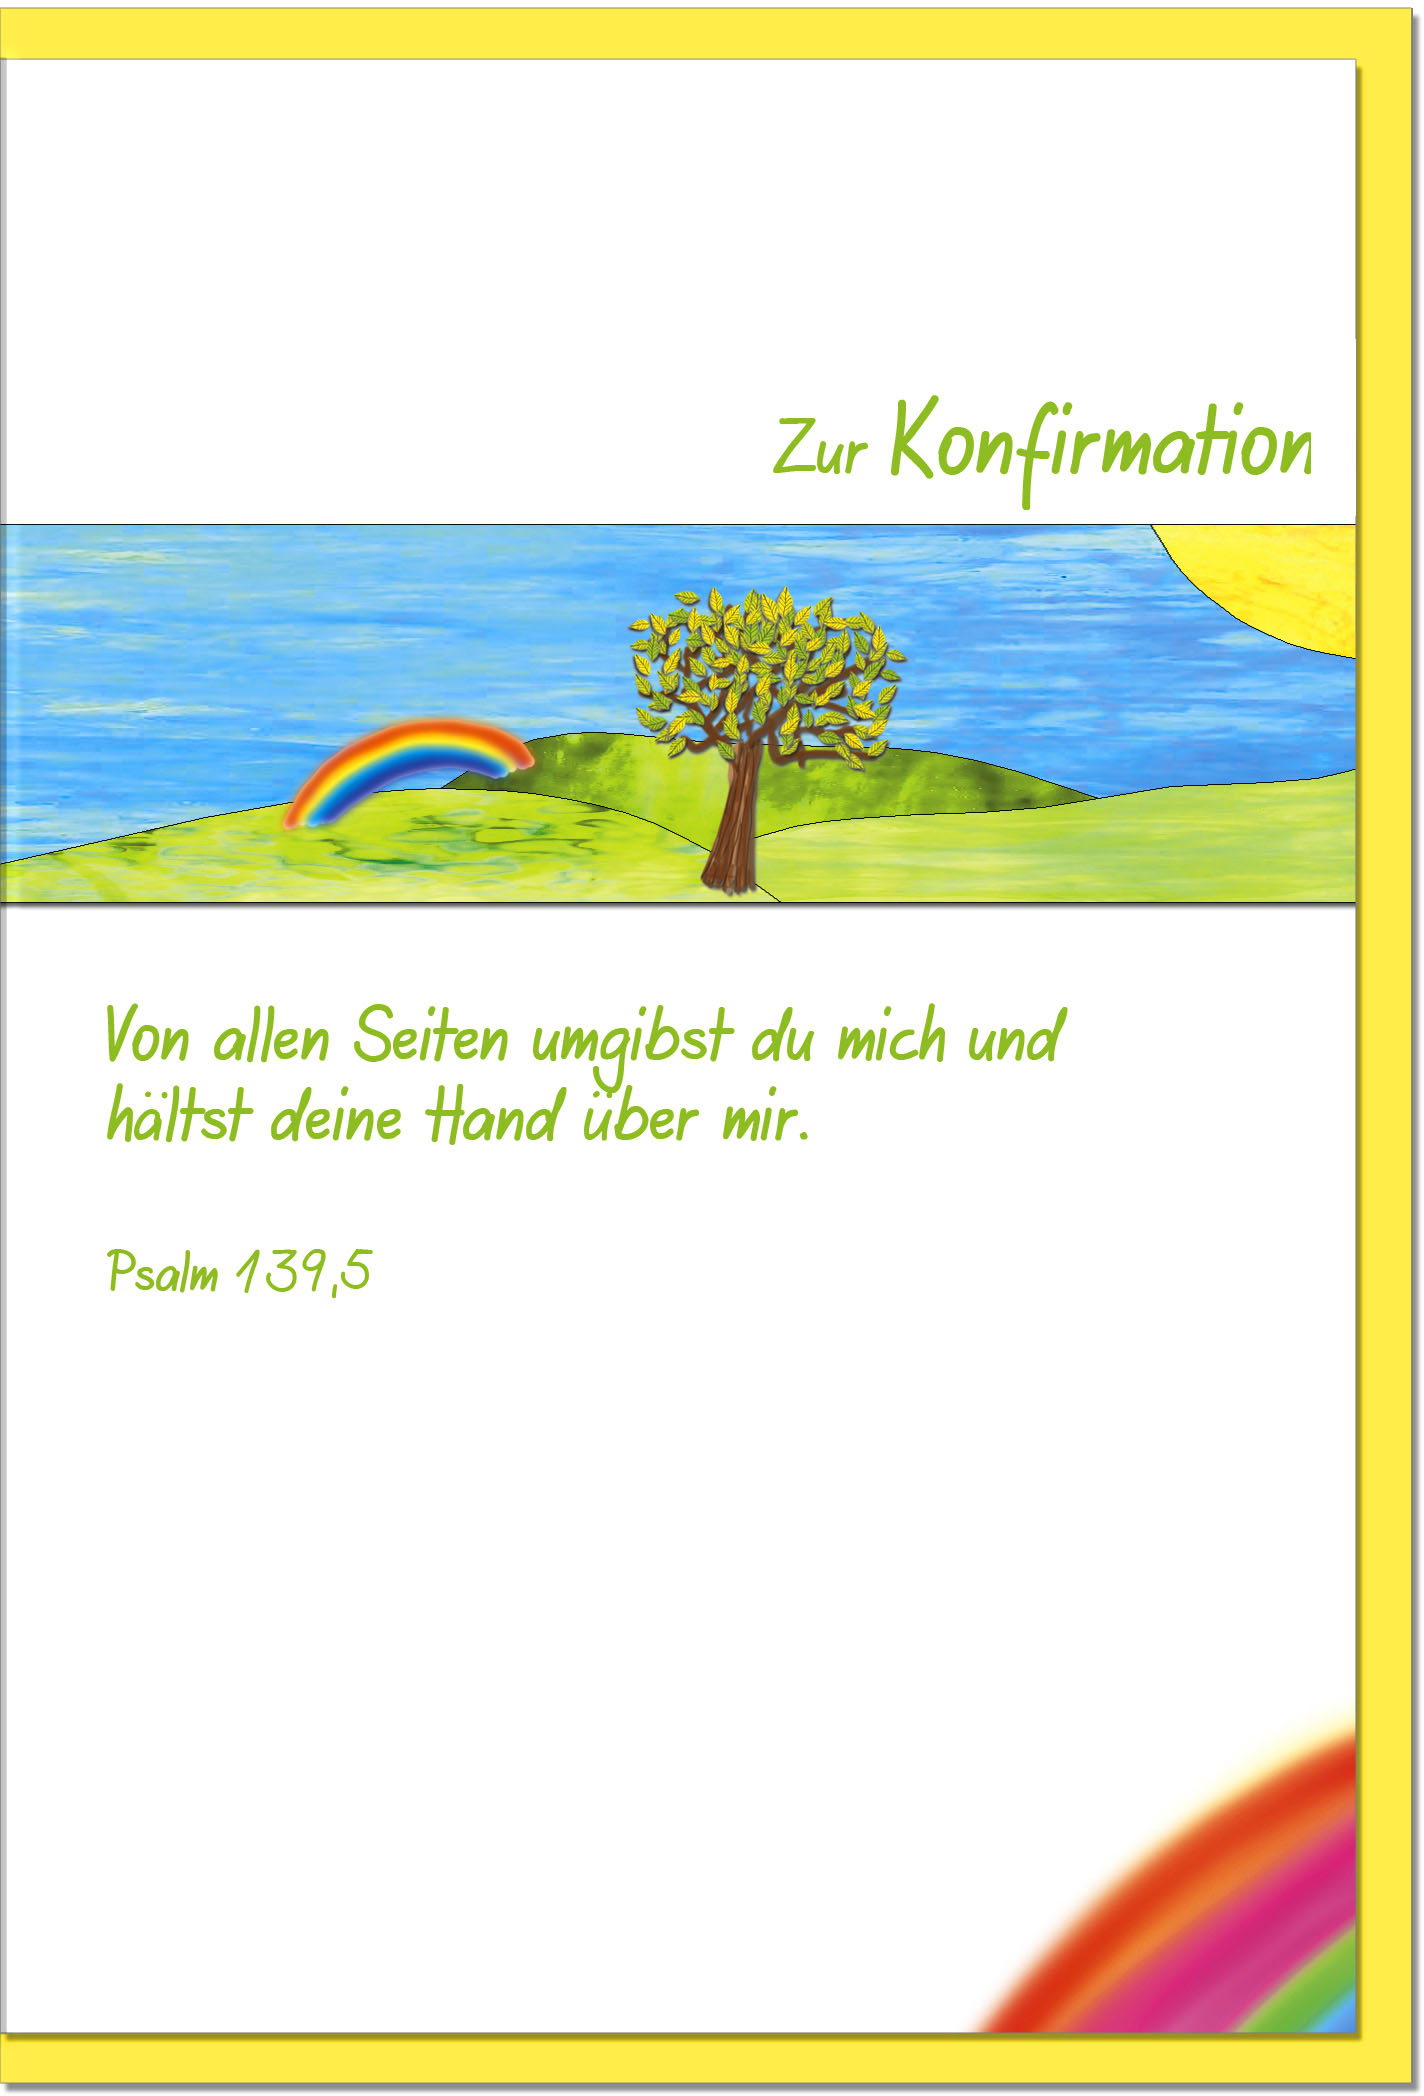 Konfirmationskarten / Grußkarten /Konfirmation Baum